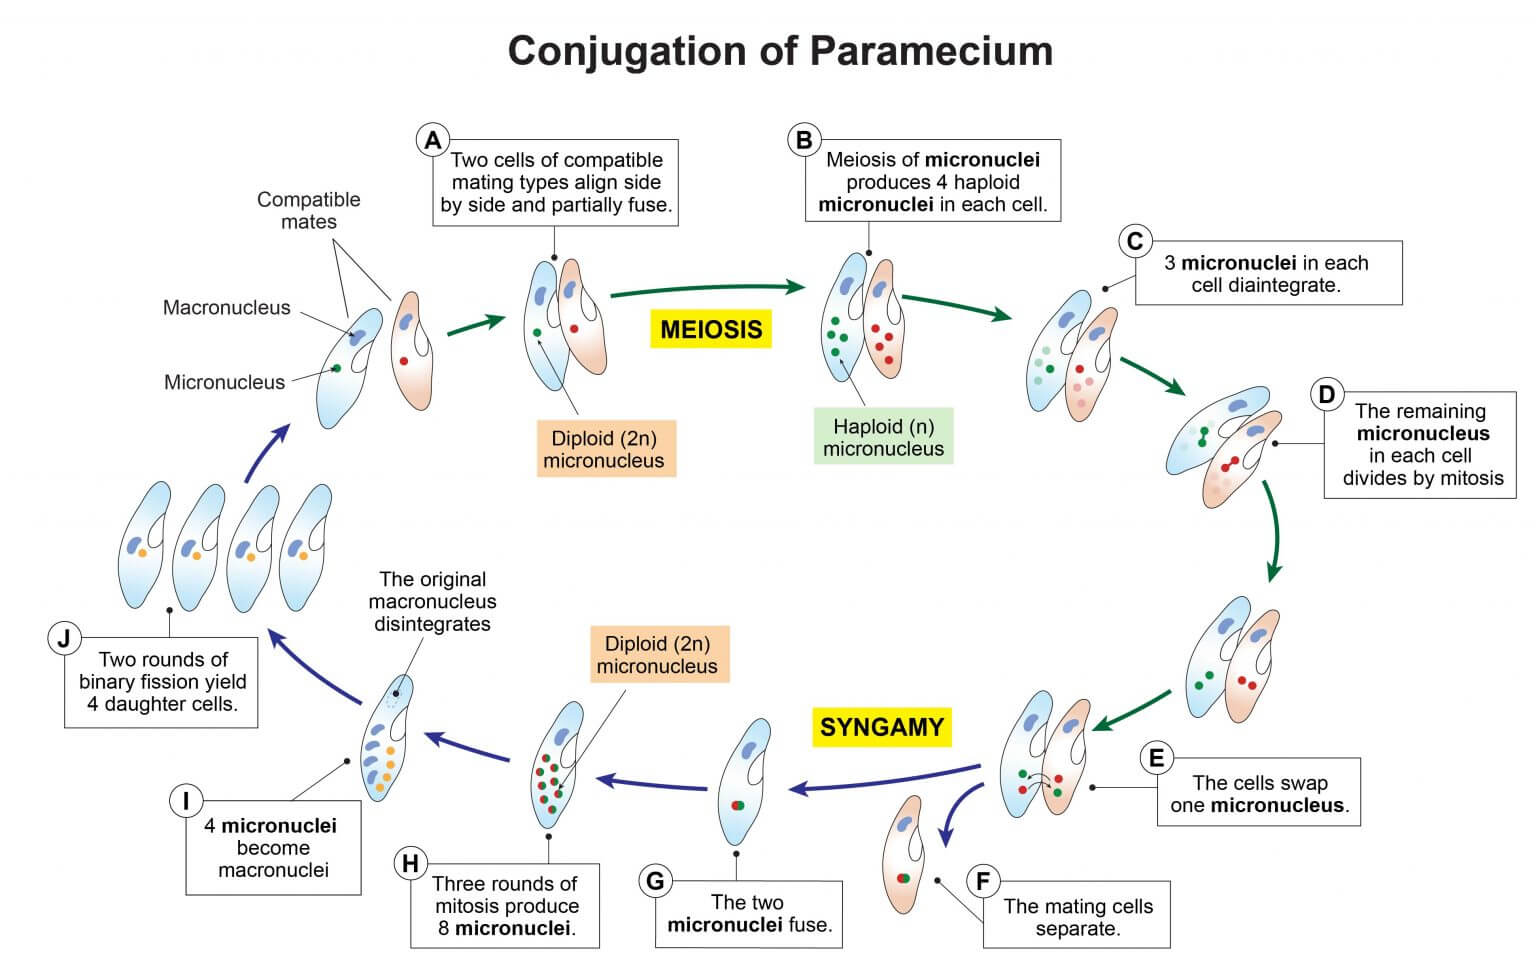 Conjugation of Paramecium